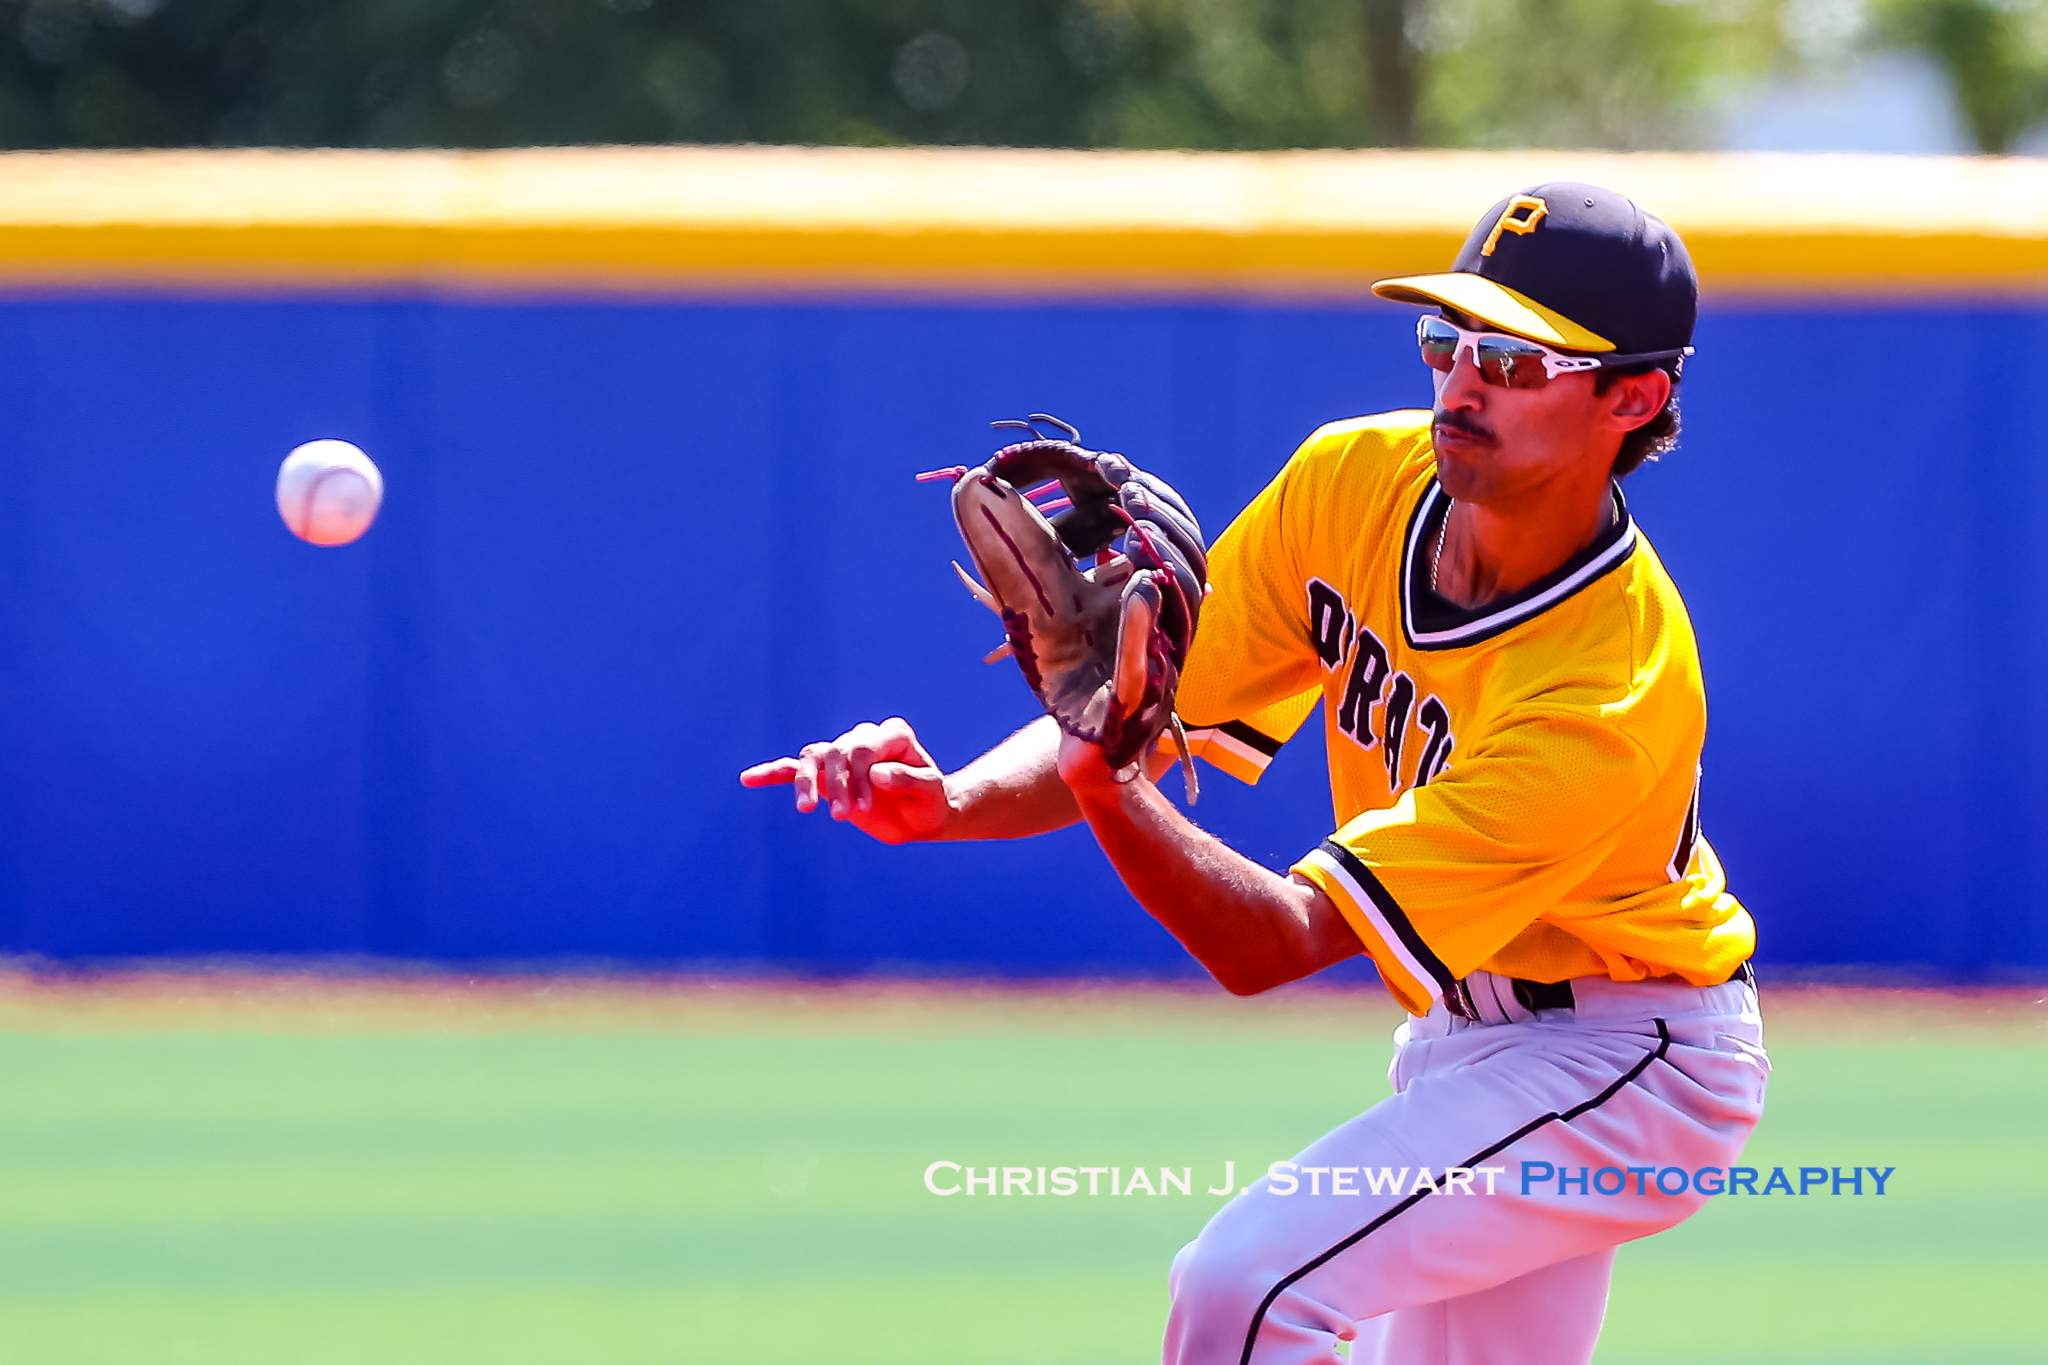 Mid-Island second baseman Odhan Manhas makes a play against UBC in the semi-final game Sunday (Photo: Christian J. Stewart)